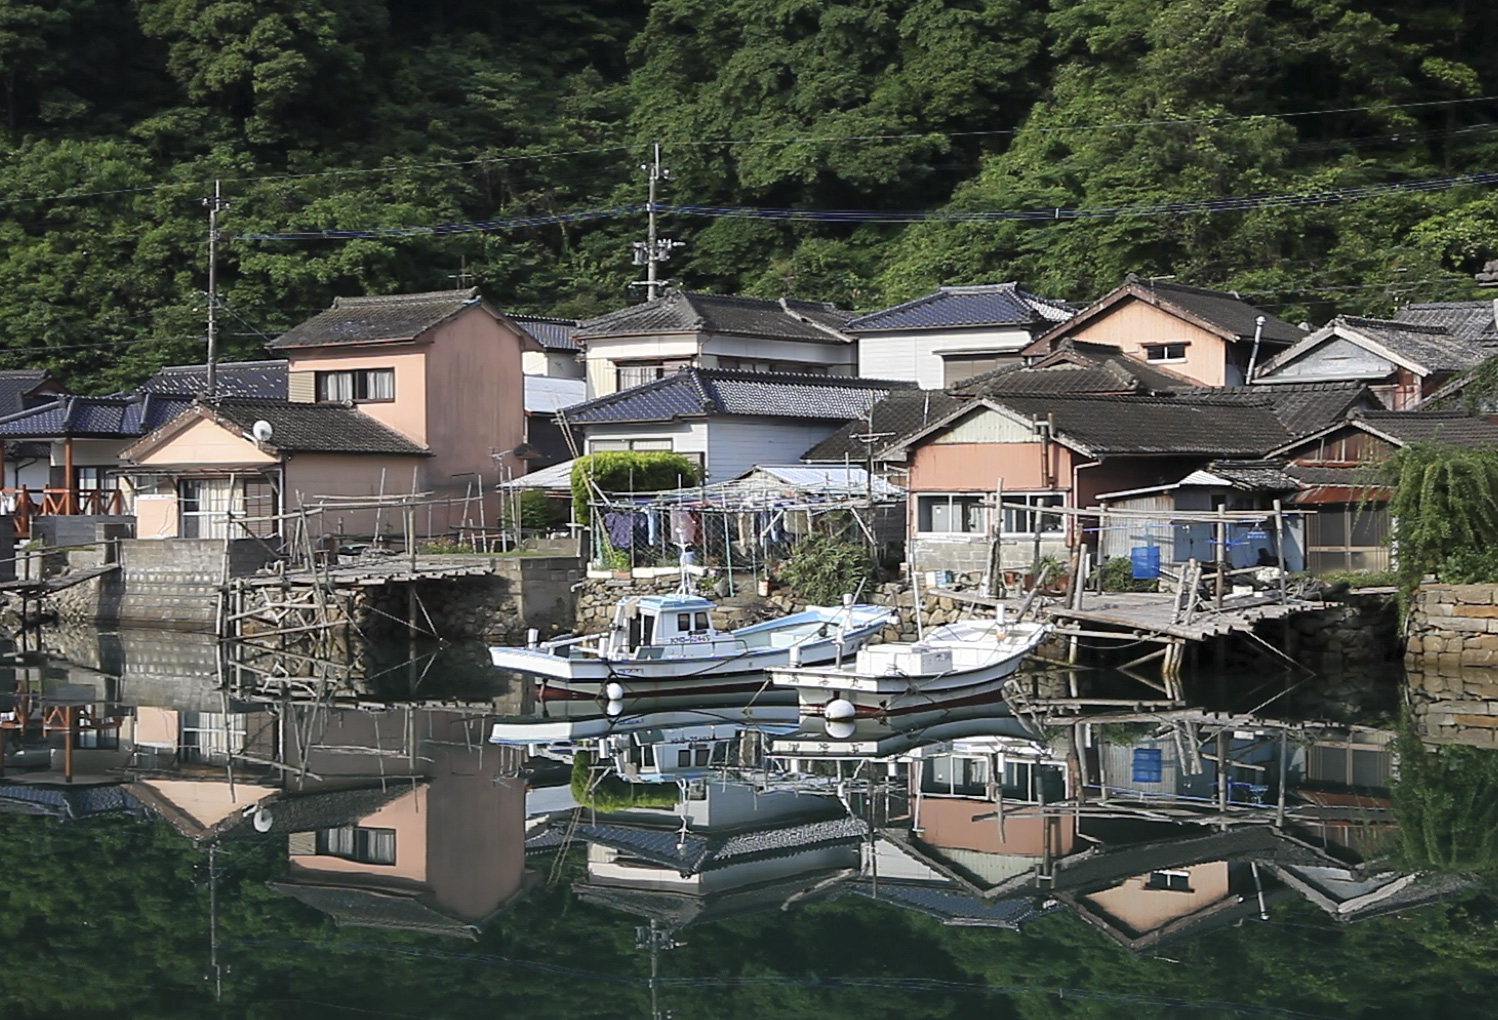 A view of the Sakitsu community